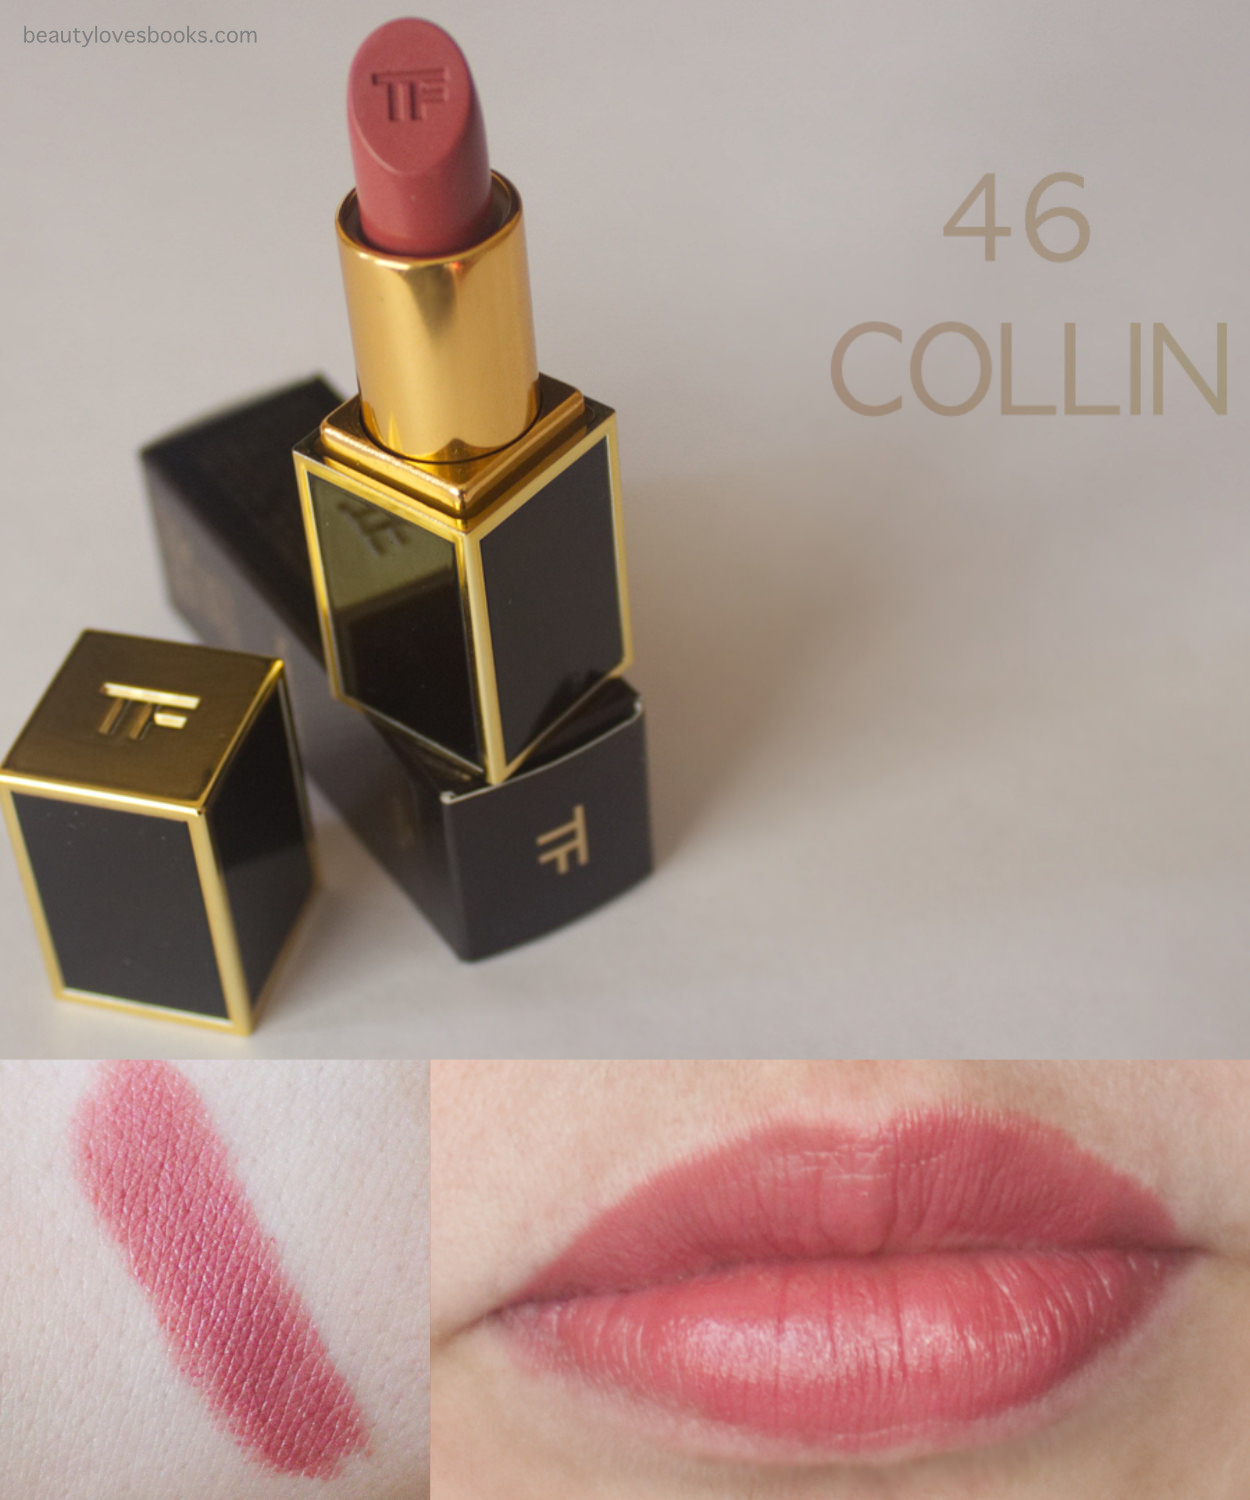 Tom Ford Lips & Boys lipstick in the shade 46 Collin swatches